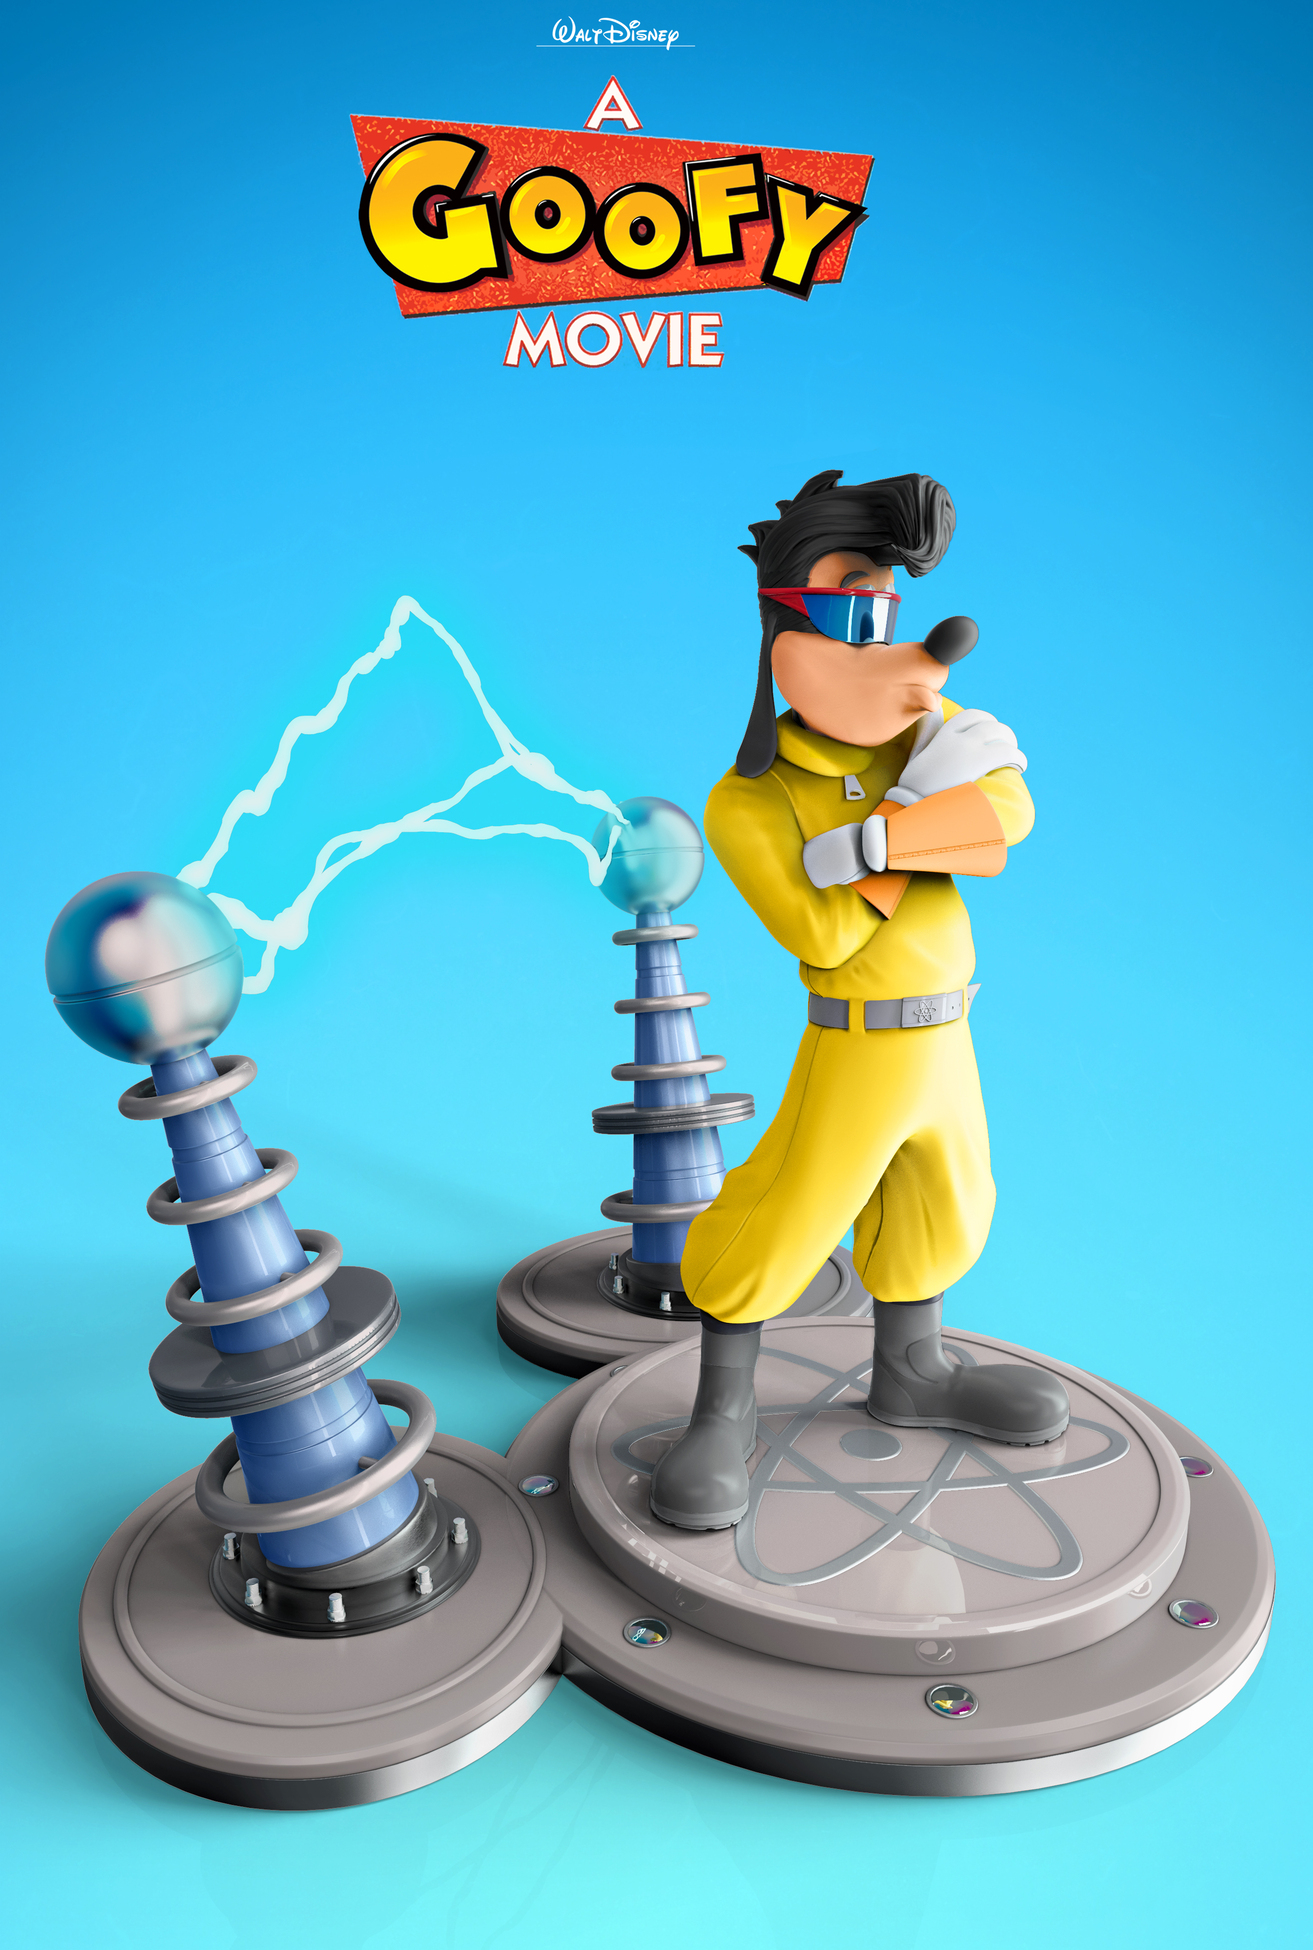 Max Goof A Goofy Movie Zbrushcentral